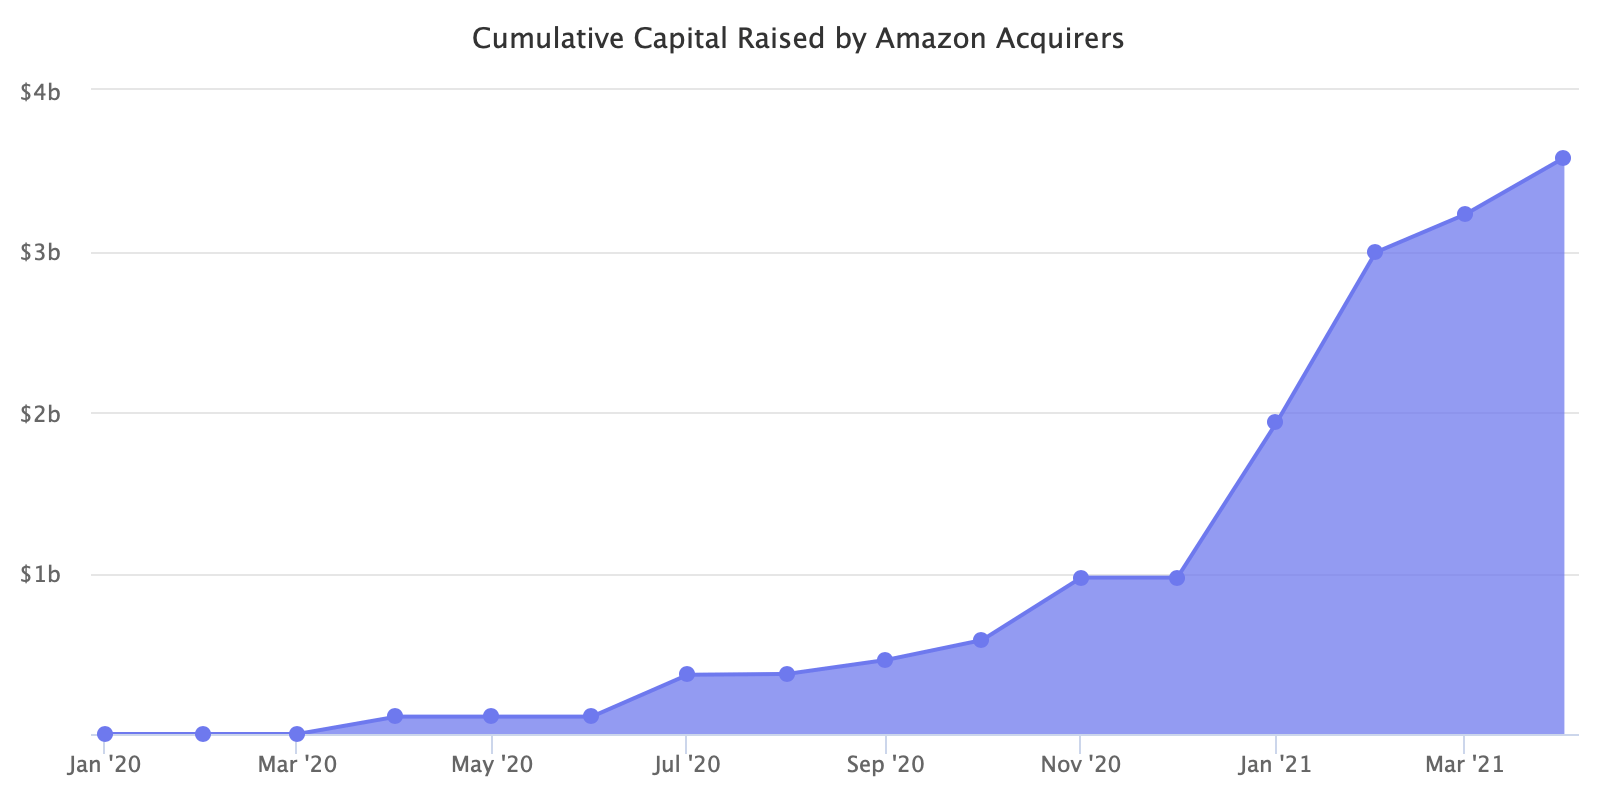 Cumulative Capital Raised by Amazon Acquirers